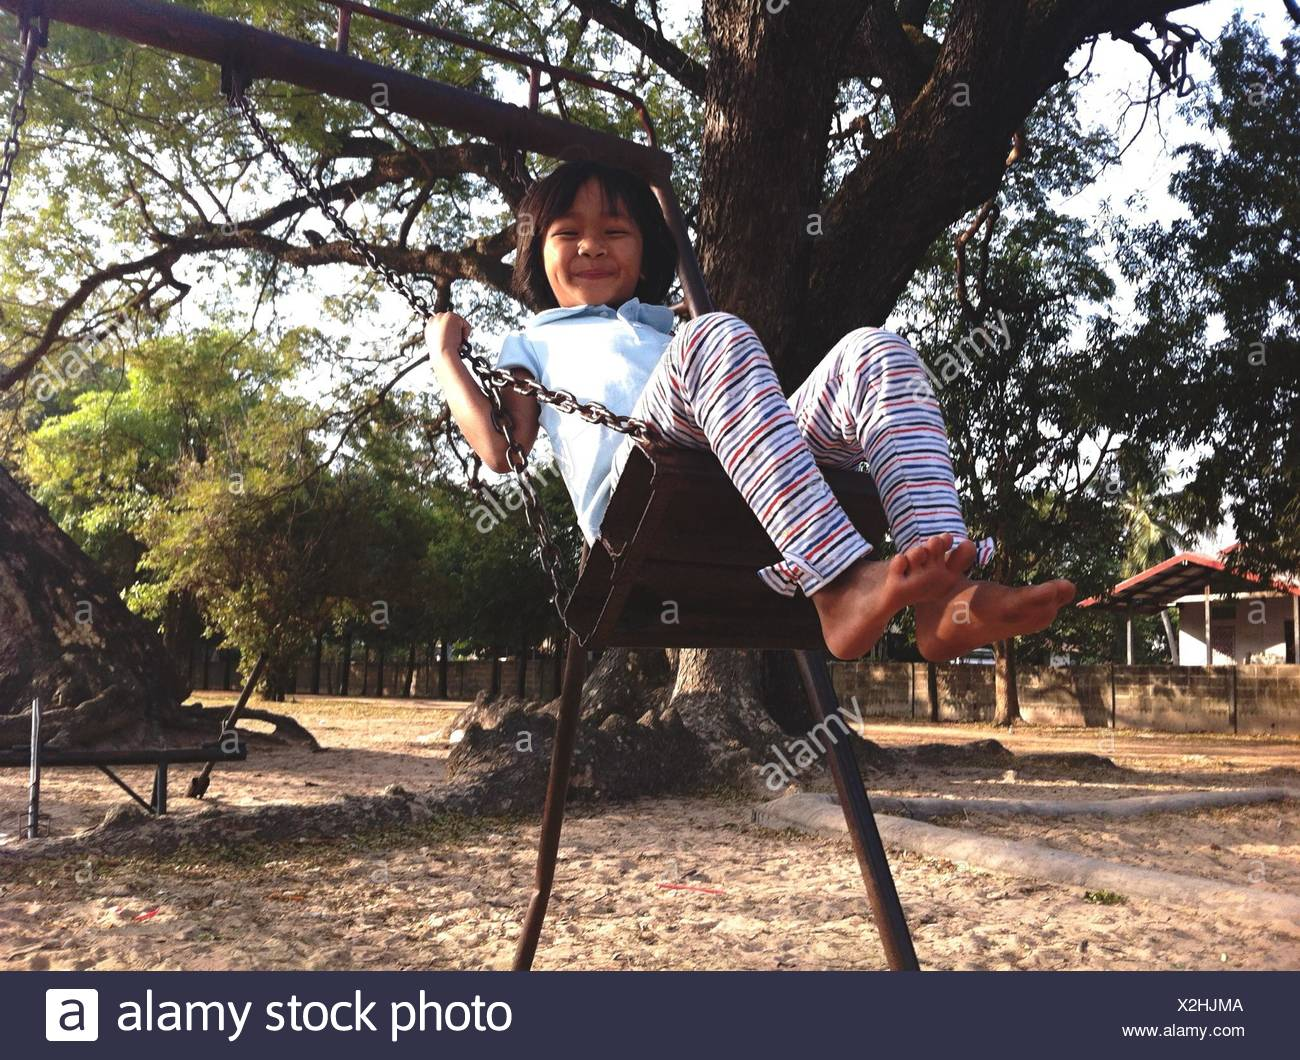 Girl Swinging On Chain Swing Ride And Smiling - Stock Image